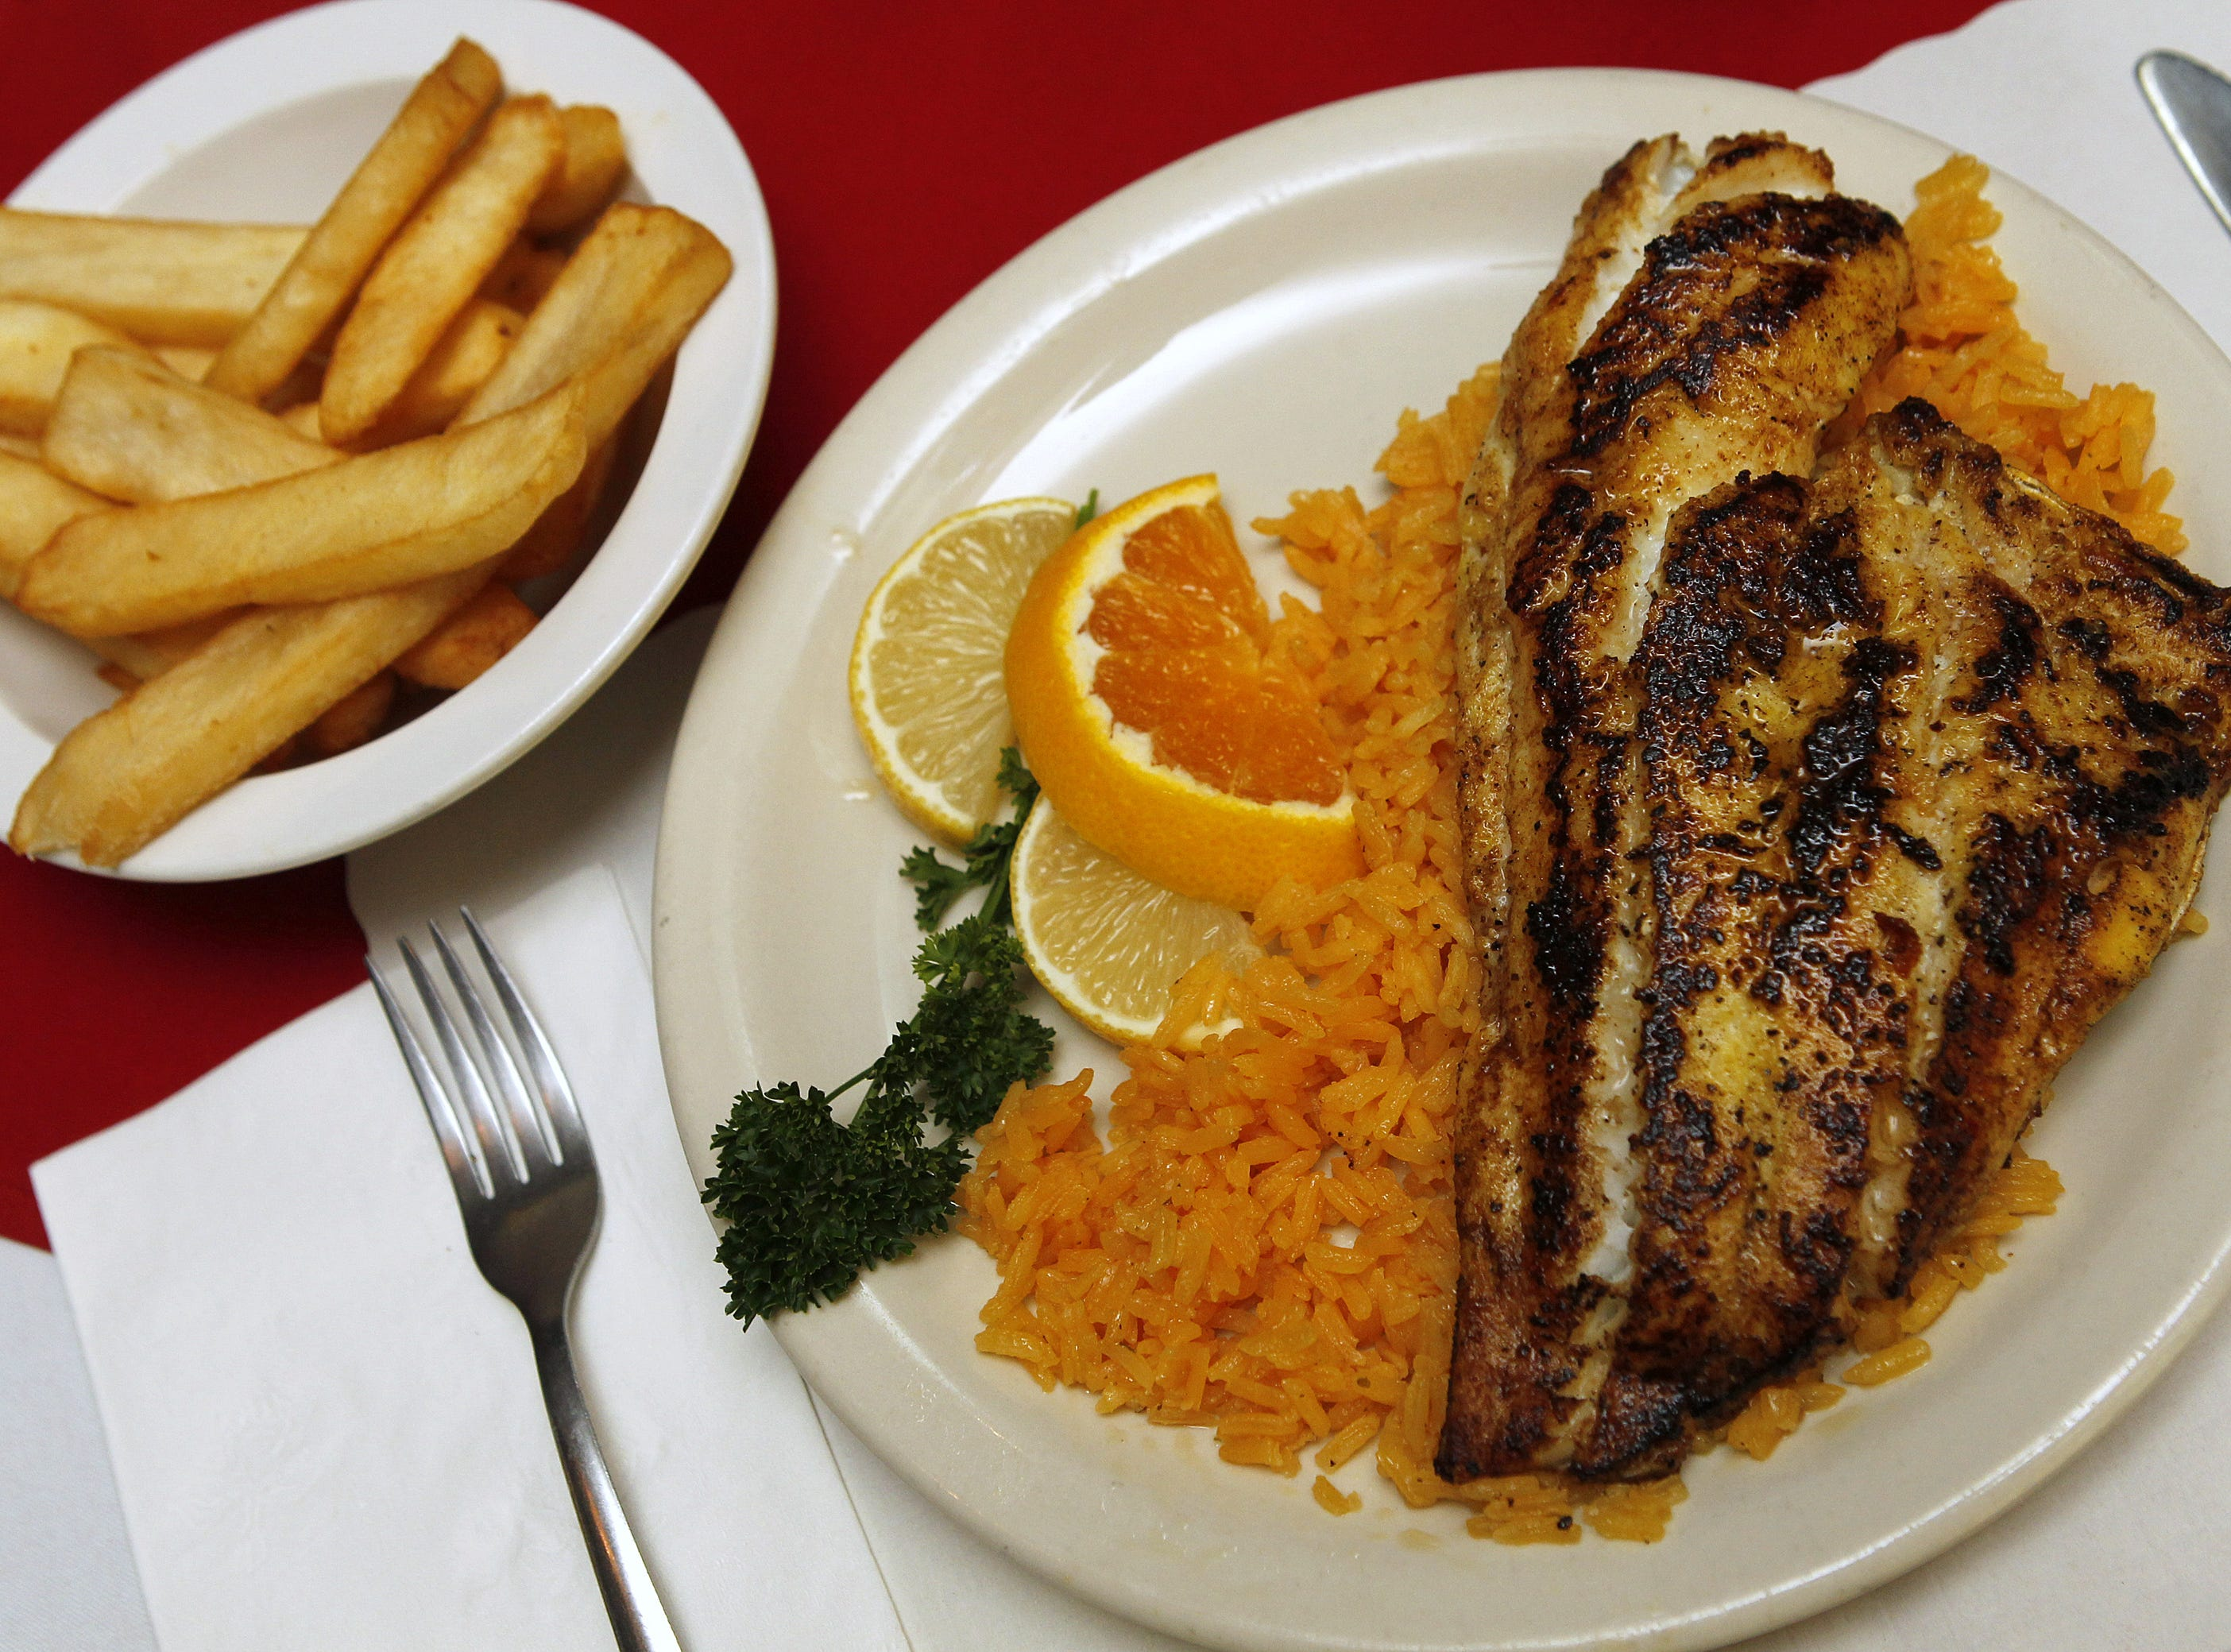 Grilled Haddock over Rice with Fries at The Reunion Inn in Irondequoit in 2010.